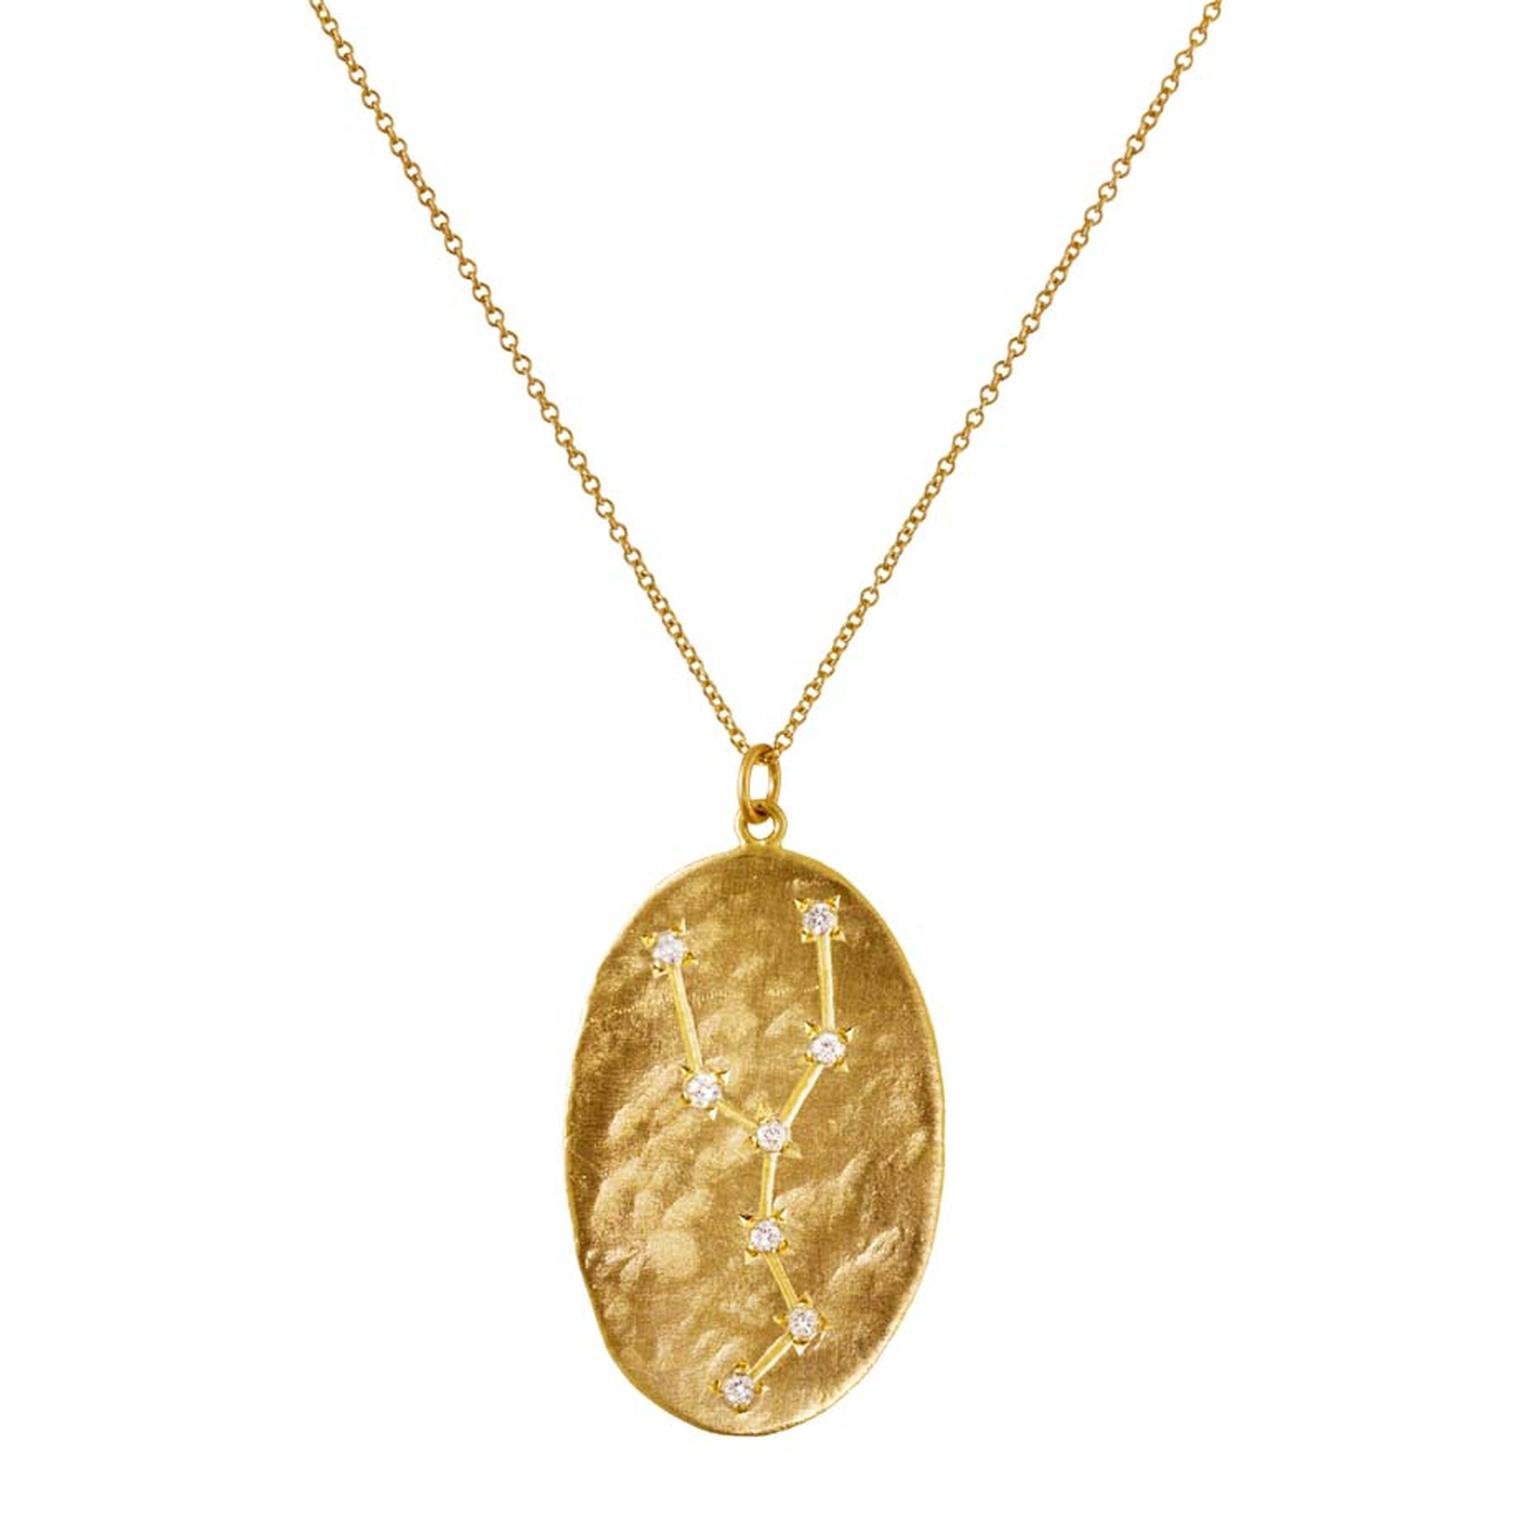 Brooke Gregson yellow gold and diamond Taurus Astrology necklace (£2,060).